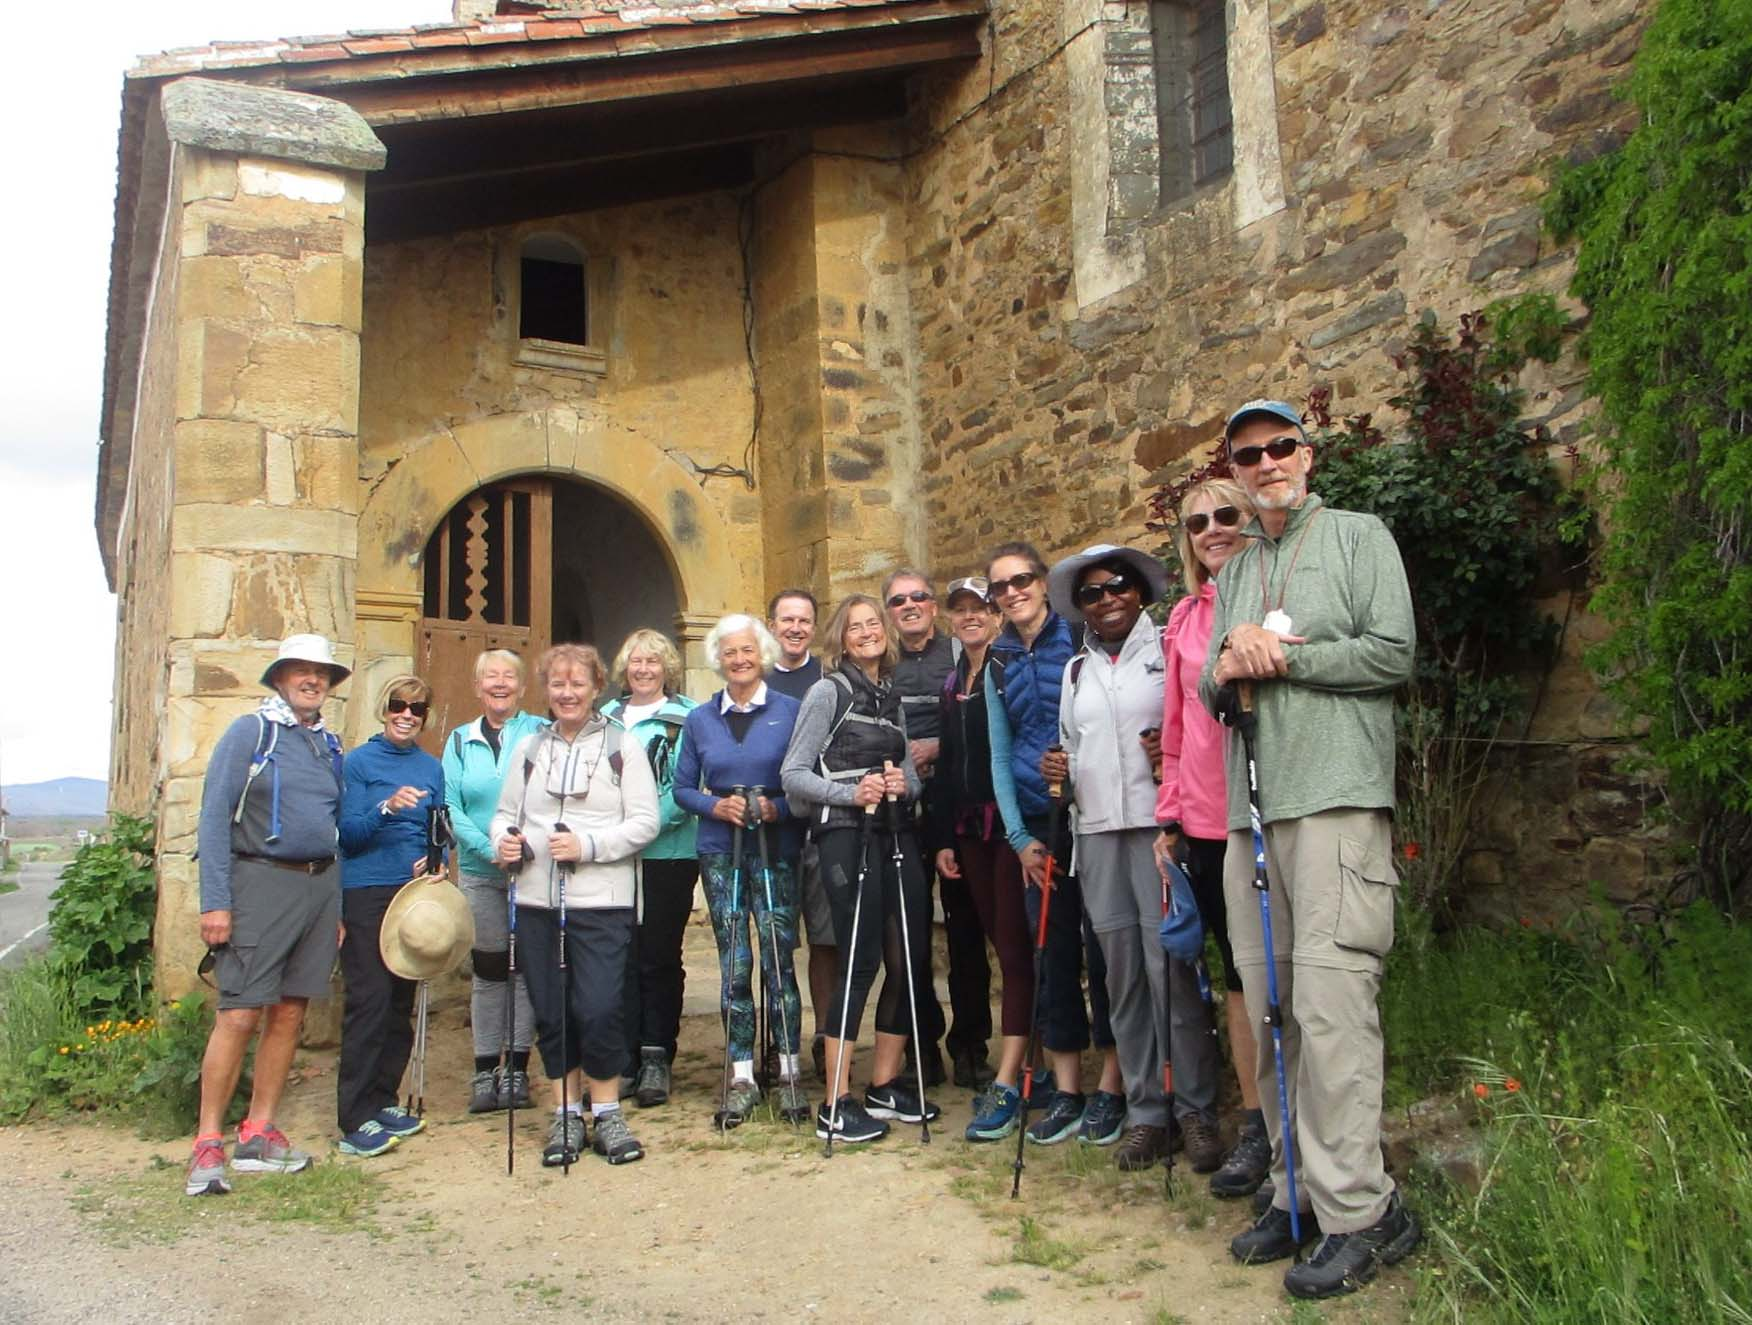 Camino de Santiago Tour - May 6, 2019